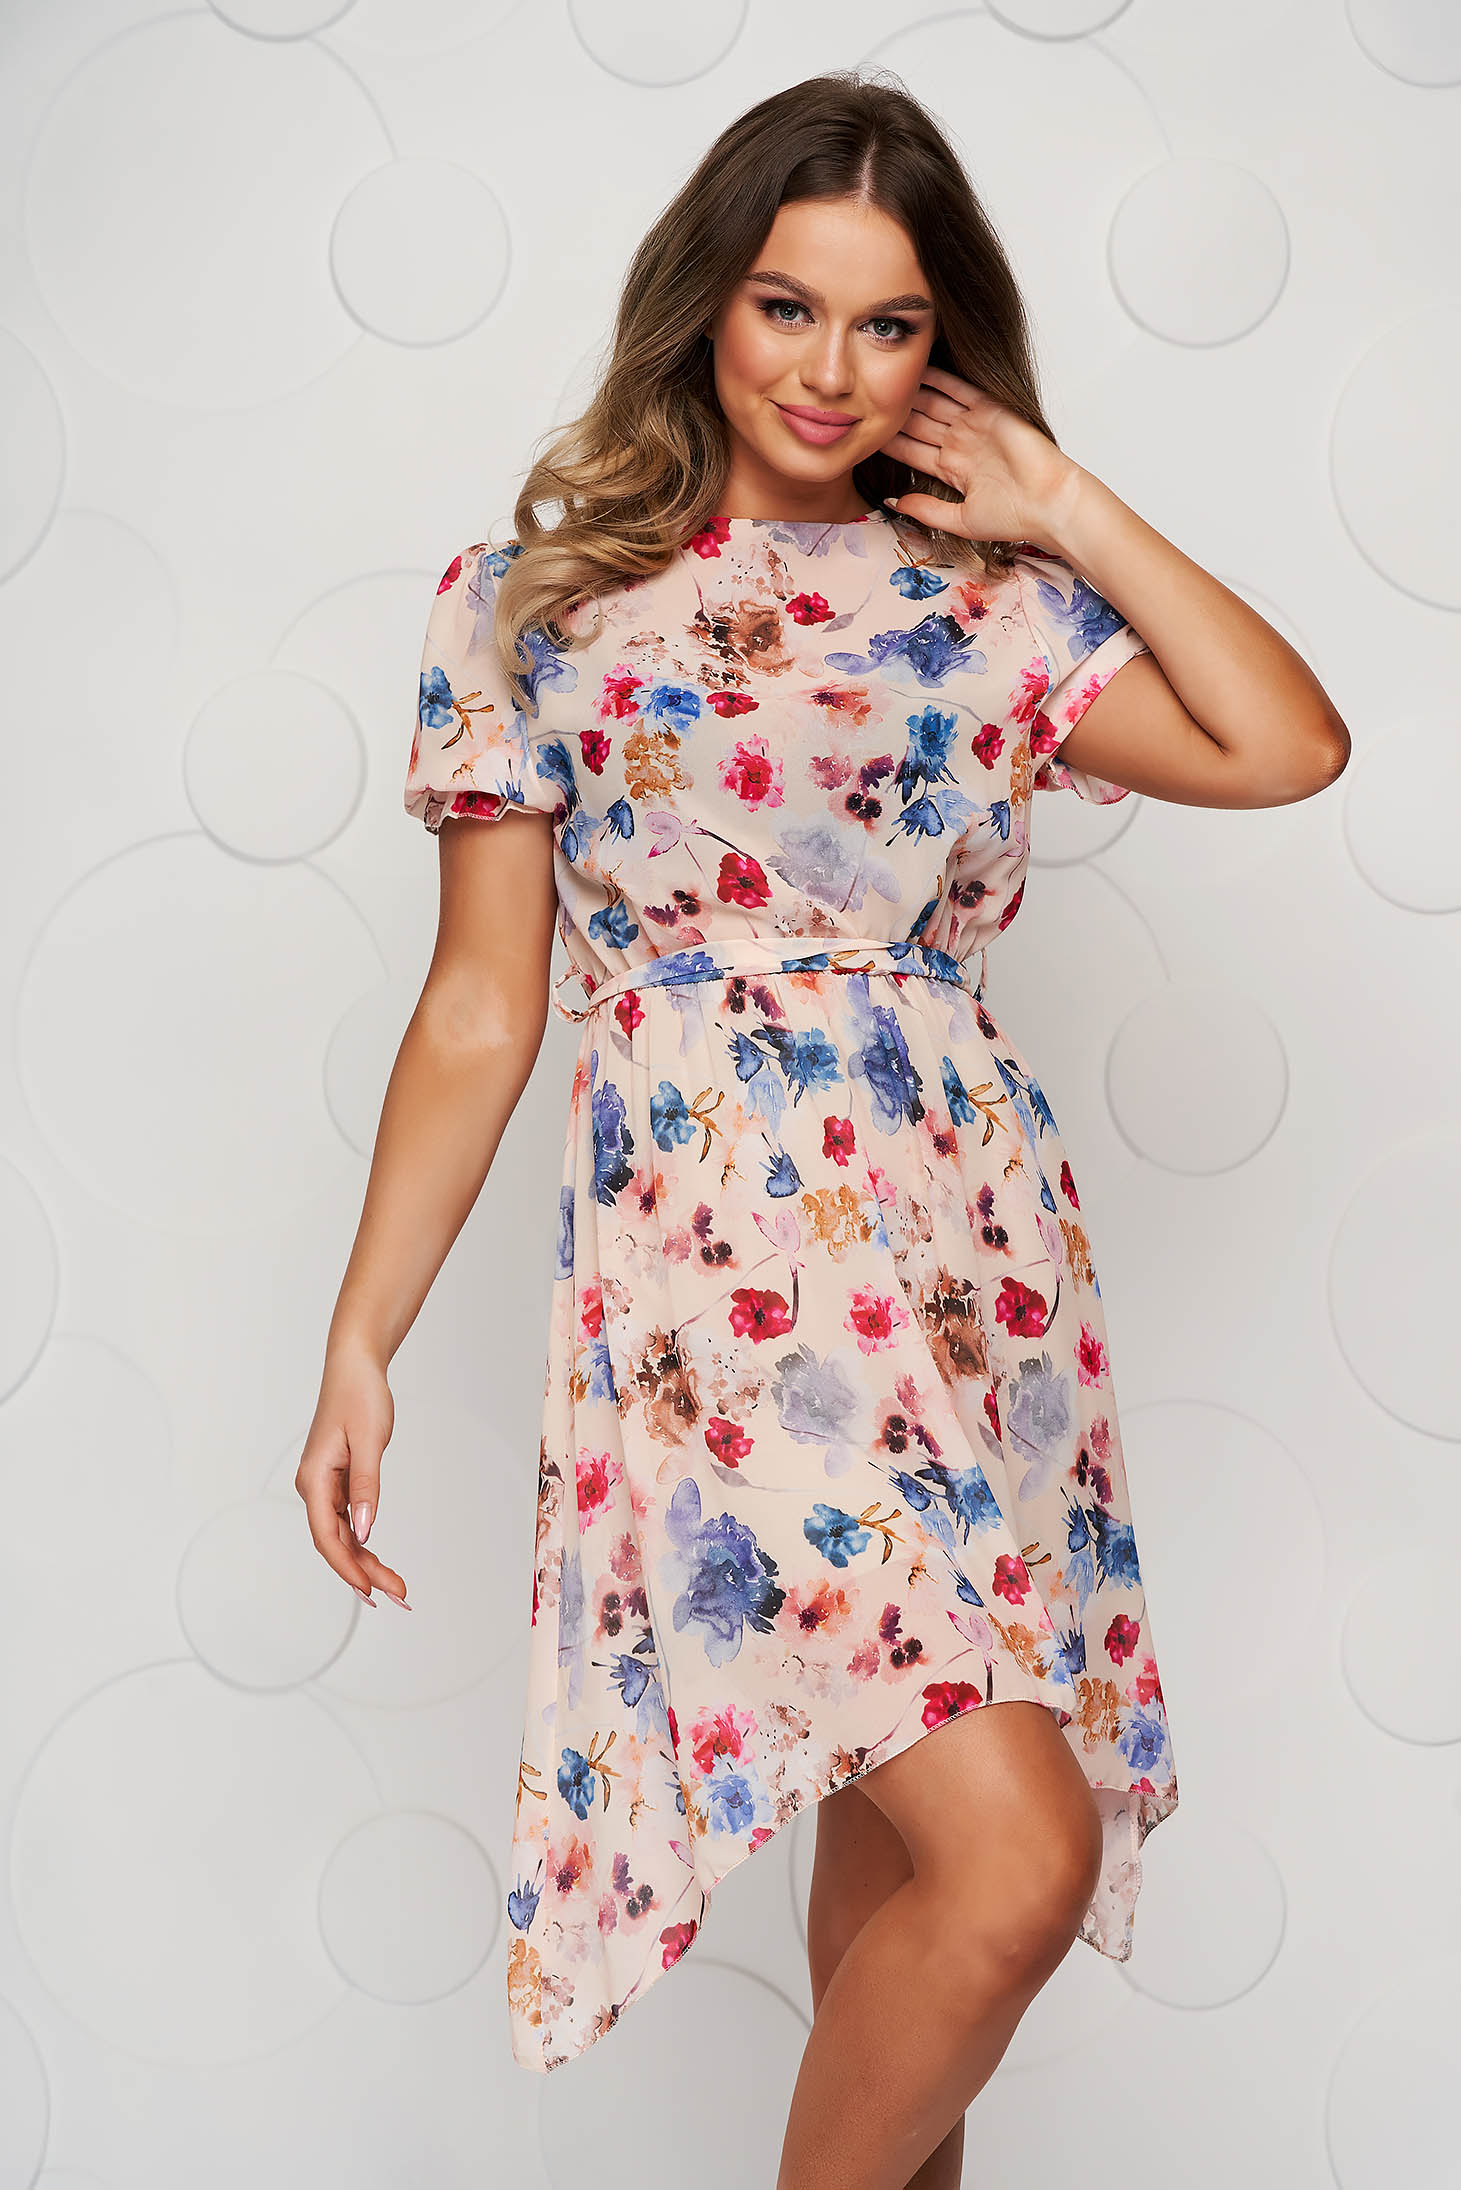 Cream dress asymmetrical cloche with elastic waist with floral print accessorized with tied waistband